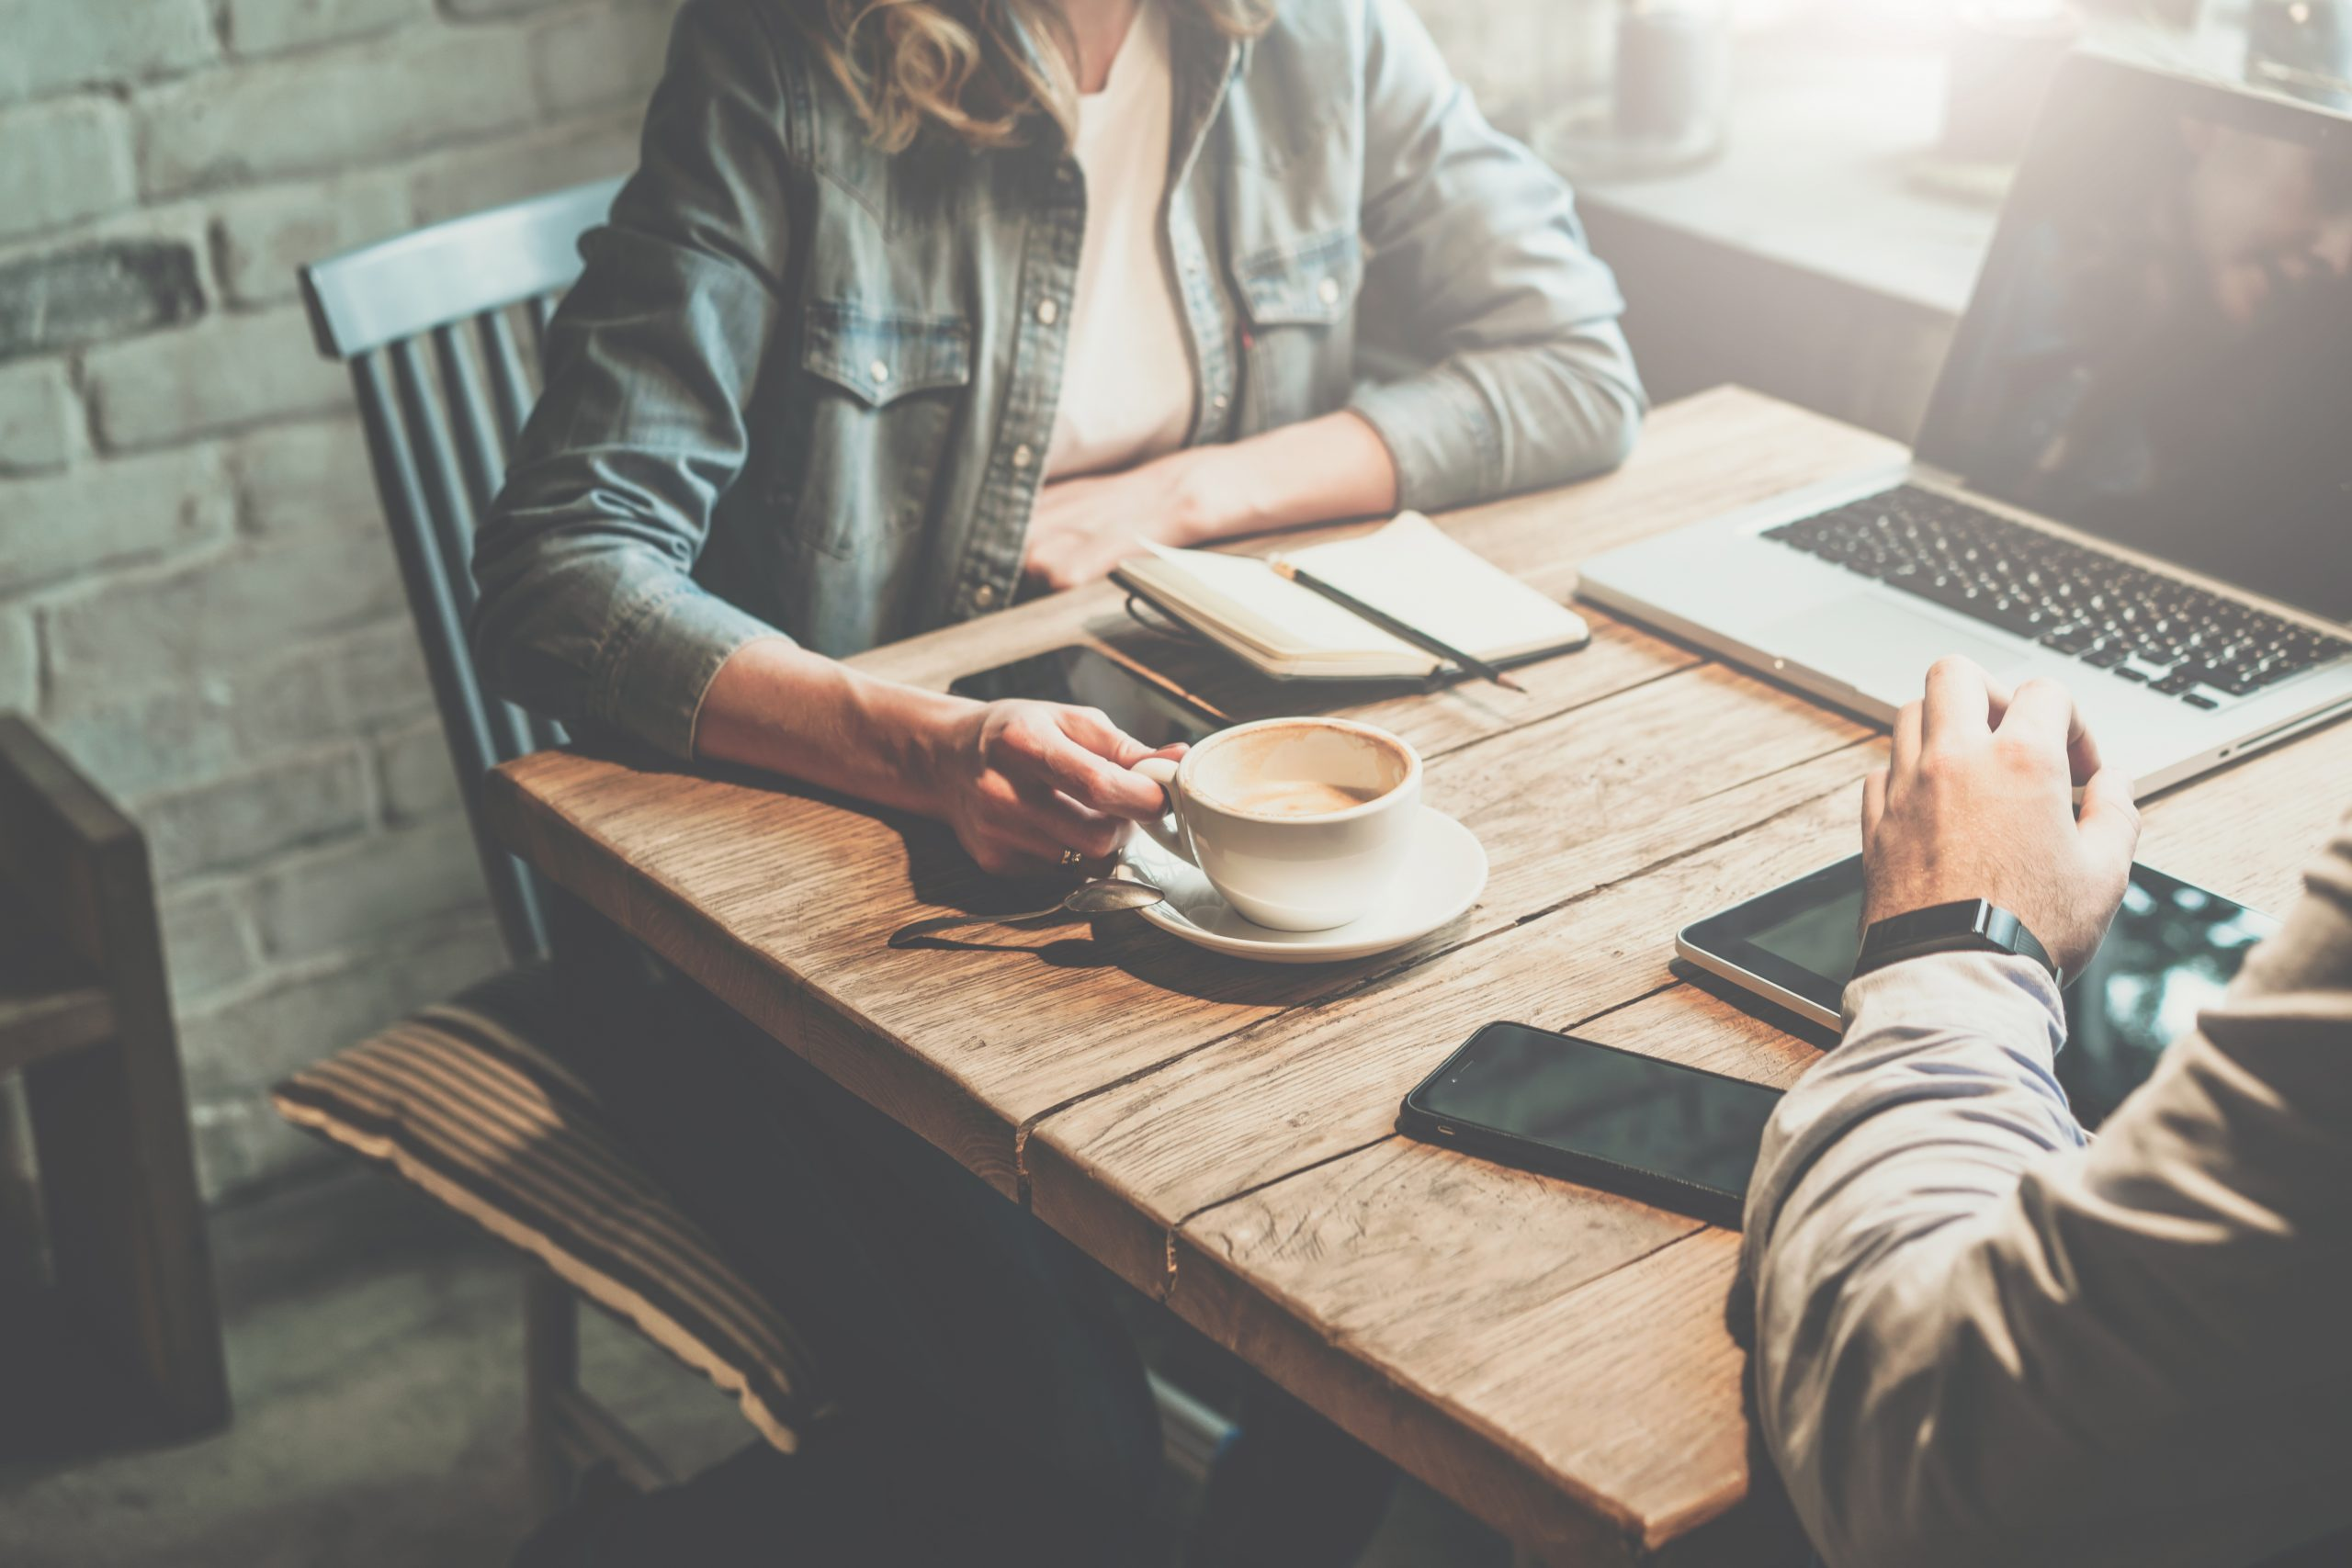 Afternoon Coffee SAP adding Amazon Business shopping feature Jaggaer webinar on simplifying sourcing optimization Agiloft beefs up staff